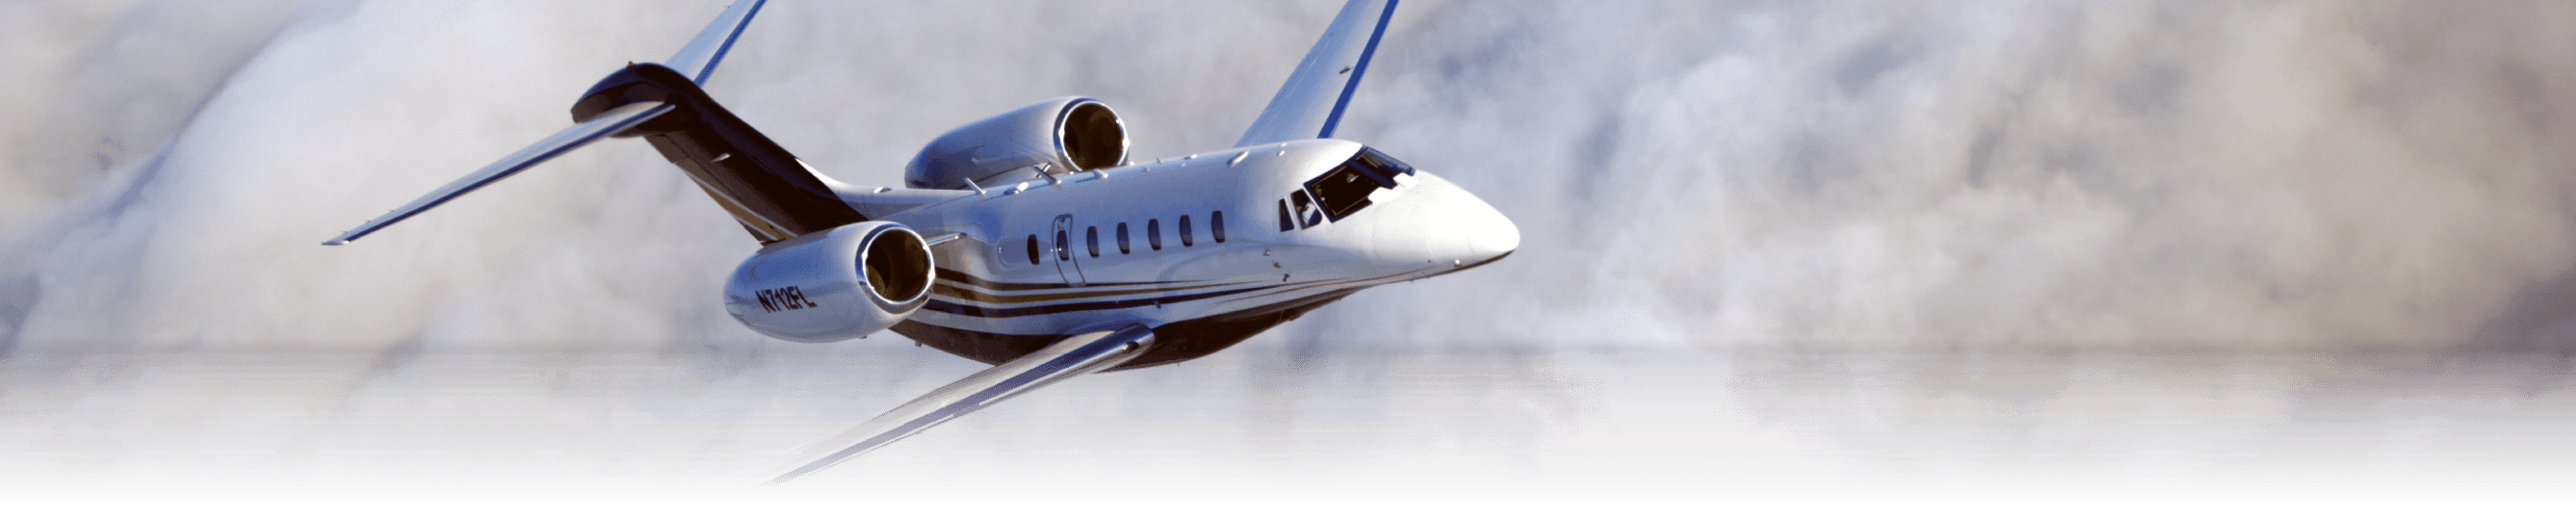 Flight Options Private Jet Aviation Frequently Asked Questions (FAQs)